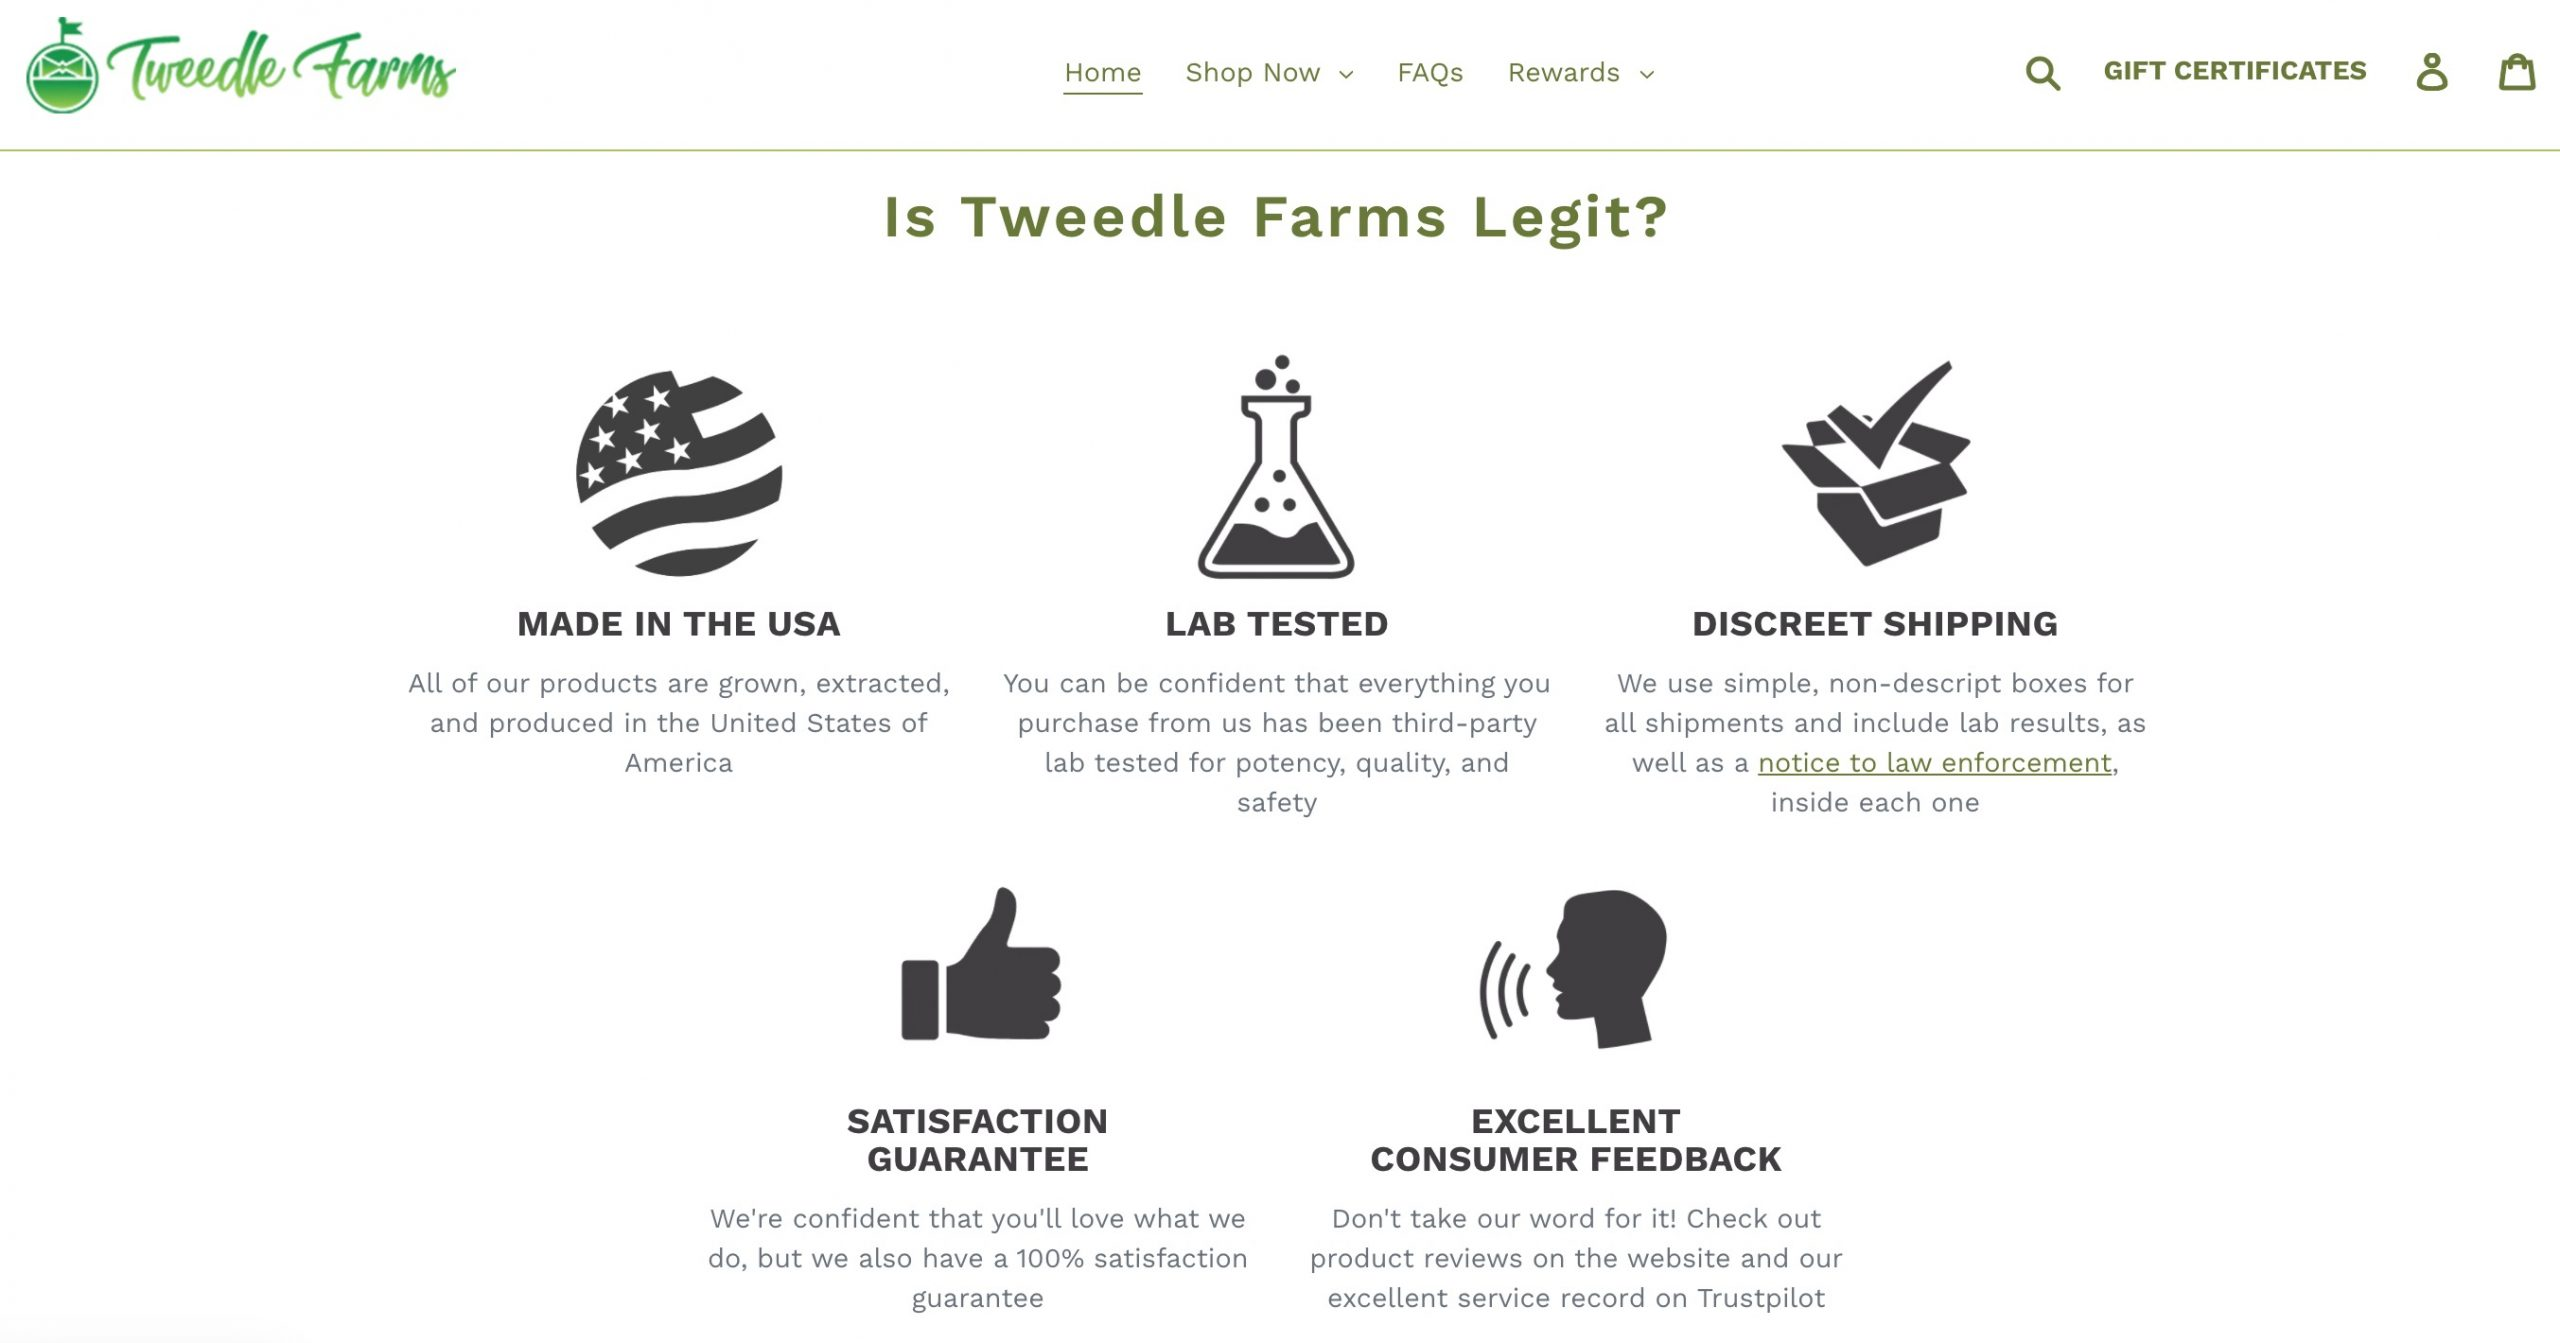 tweedle farms legit